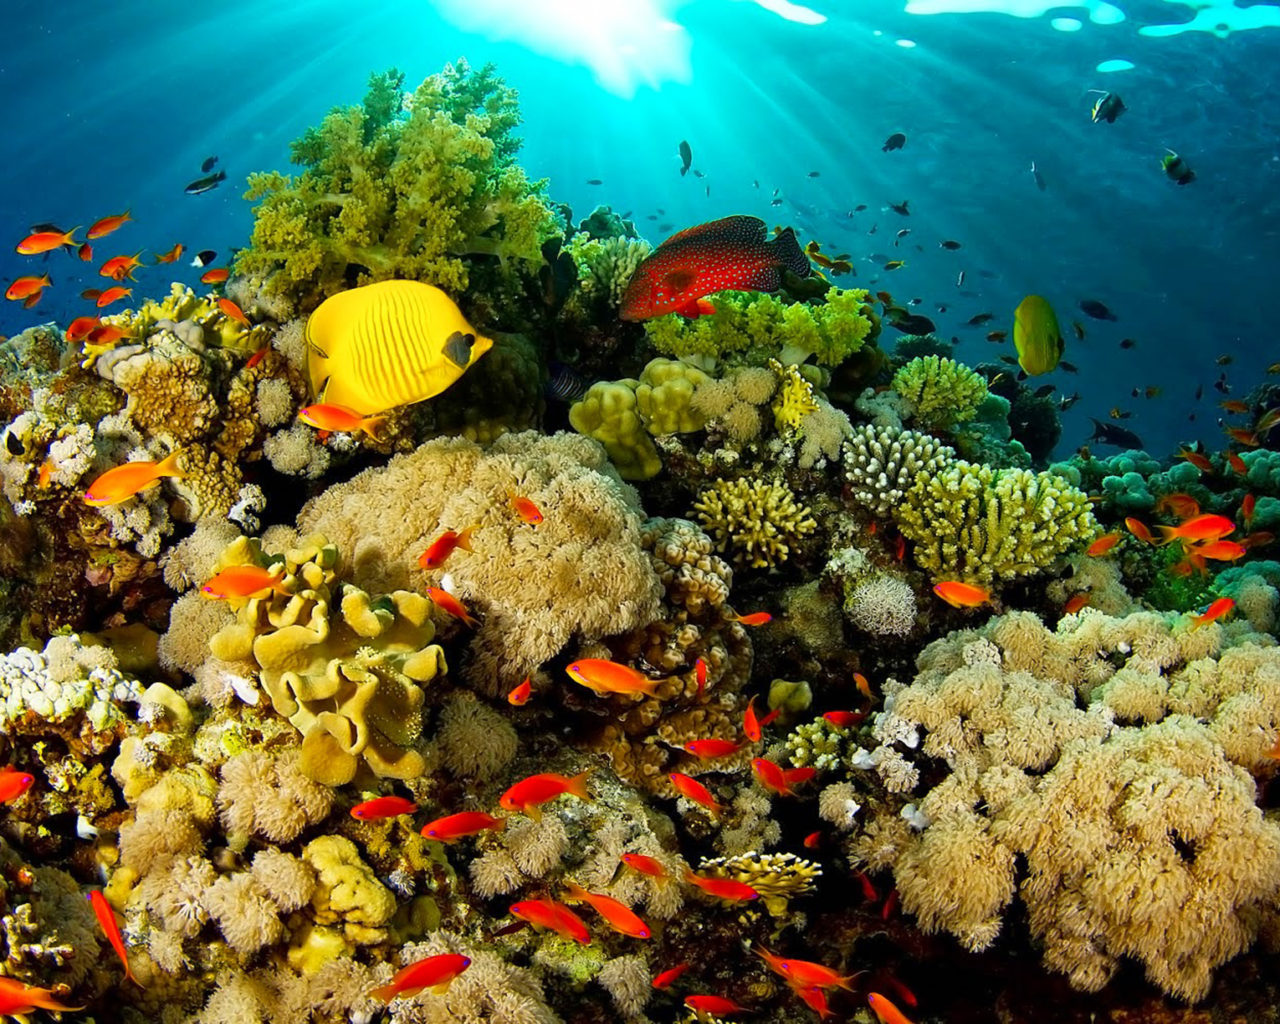 Wallpaper Fish Iphone Ocean Fauna Under Water Coral Reefs With Beautiful Coral